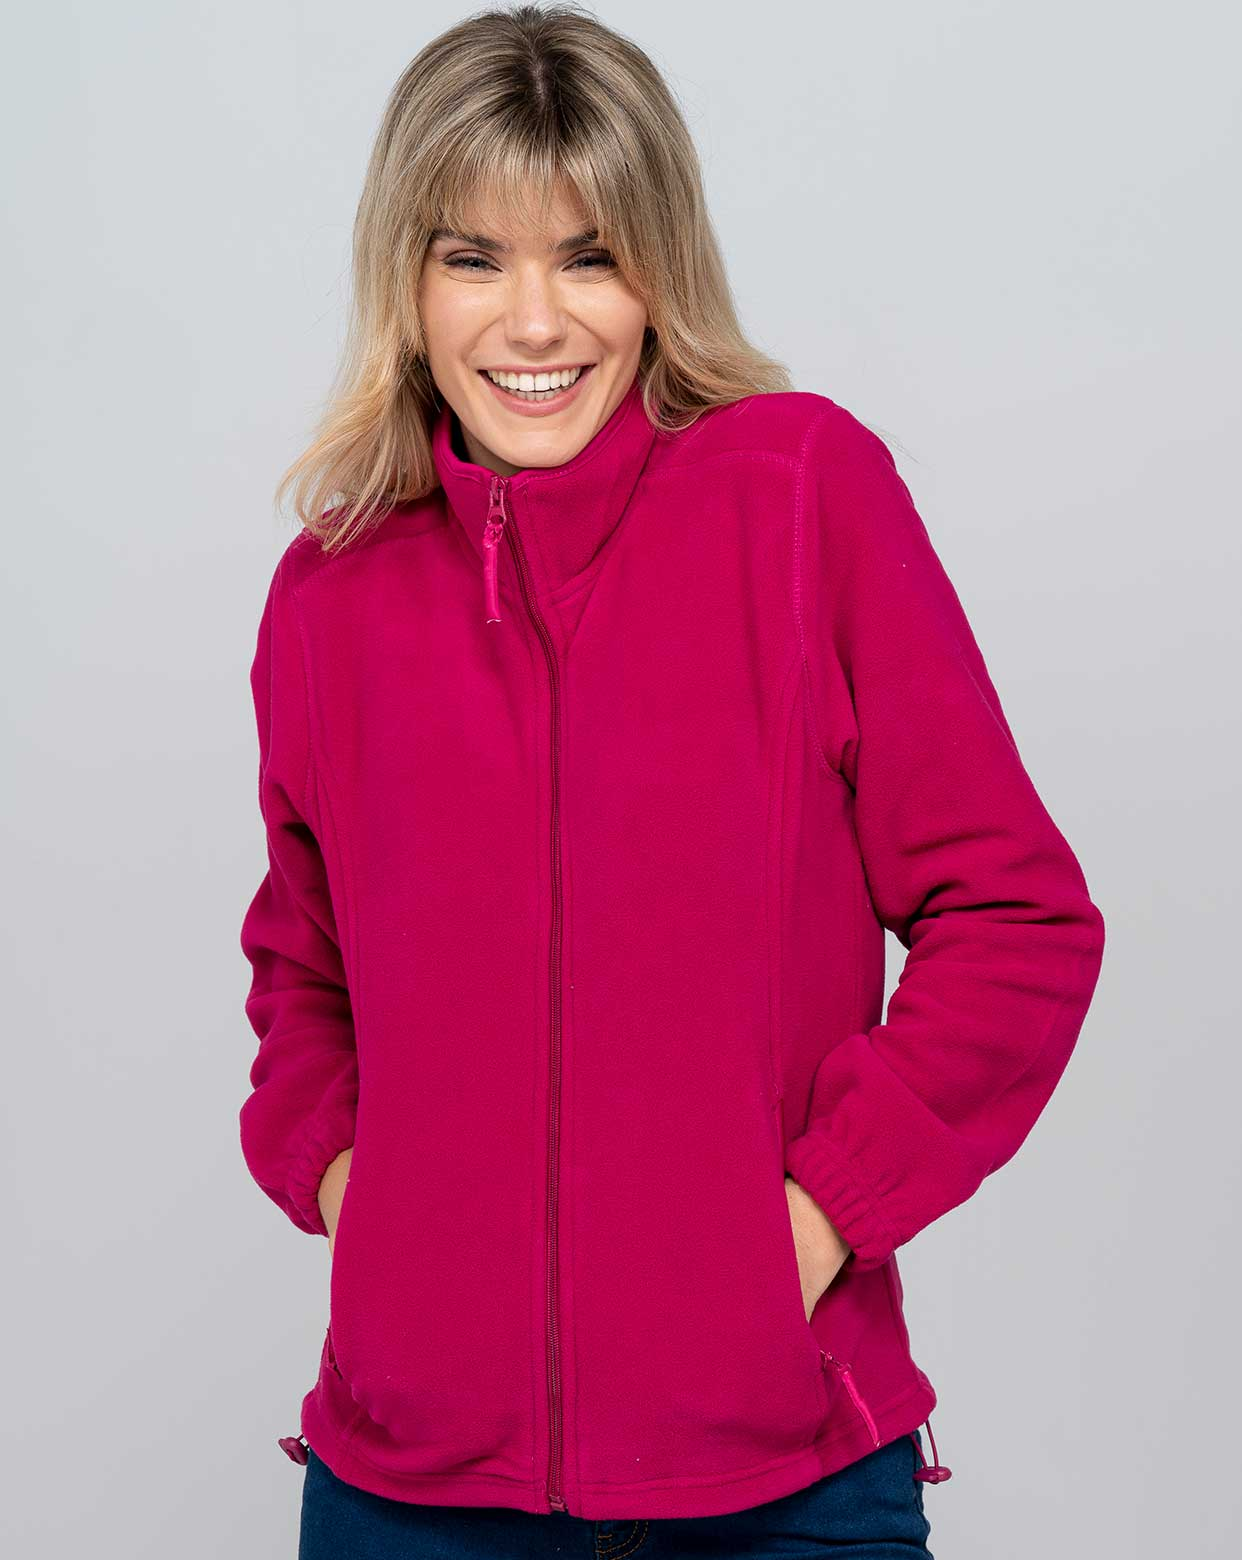 Polar Fleece Lady - FLRL300